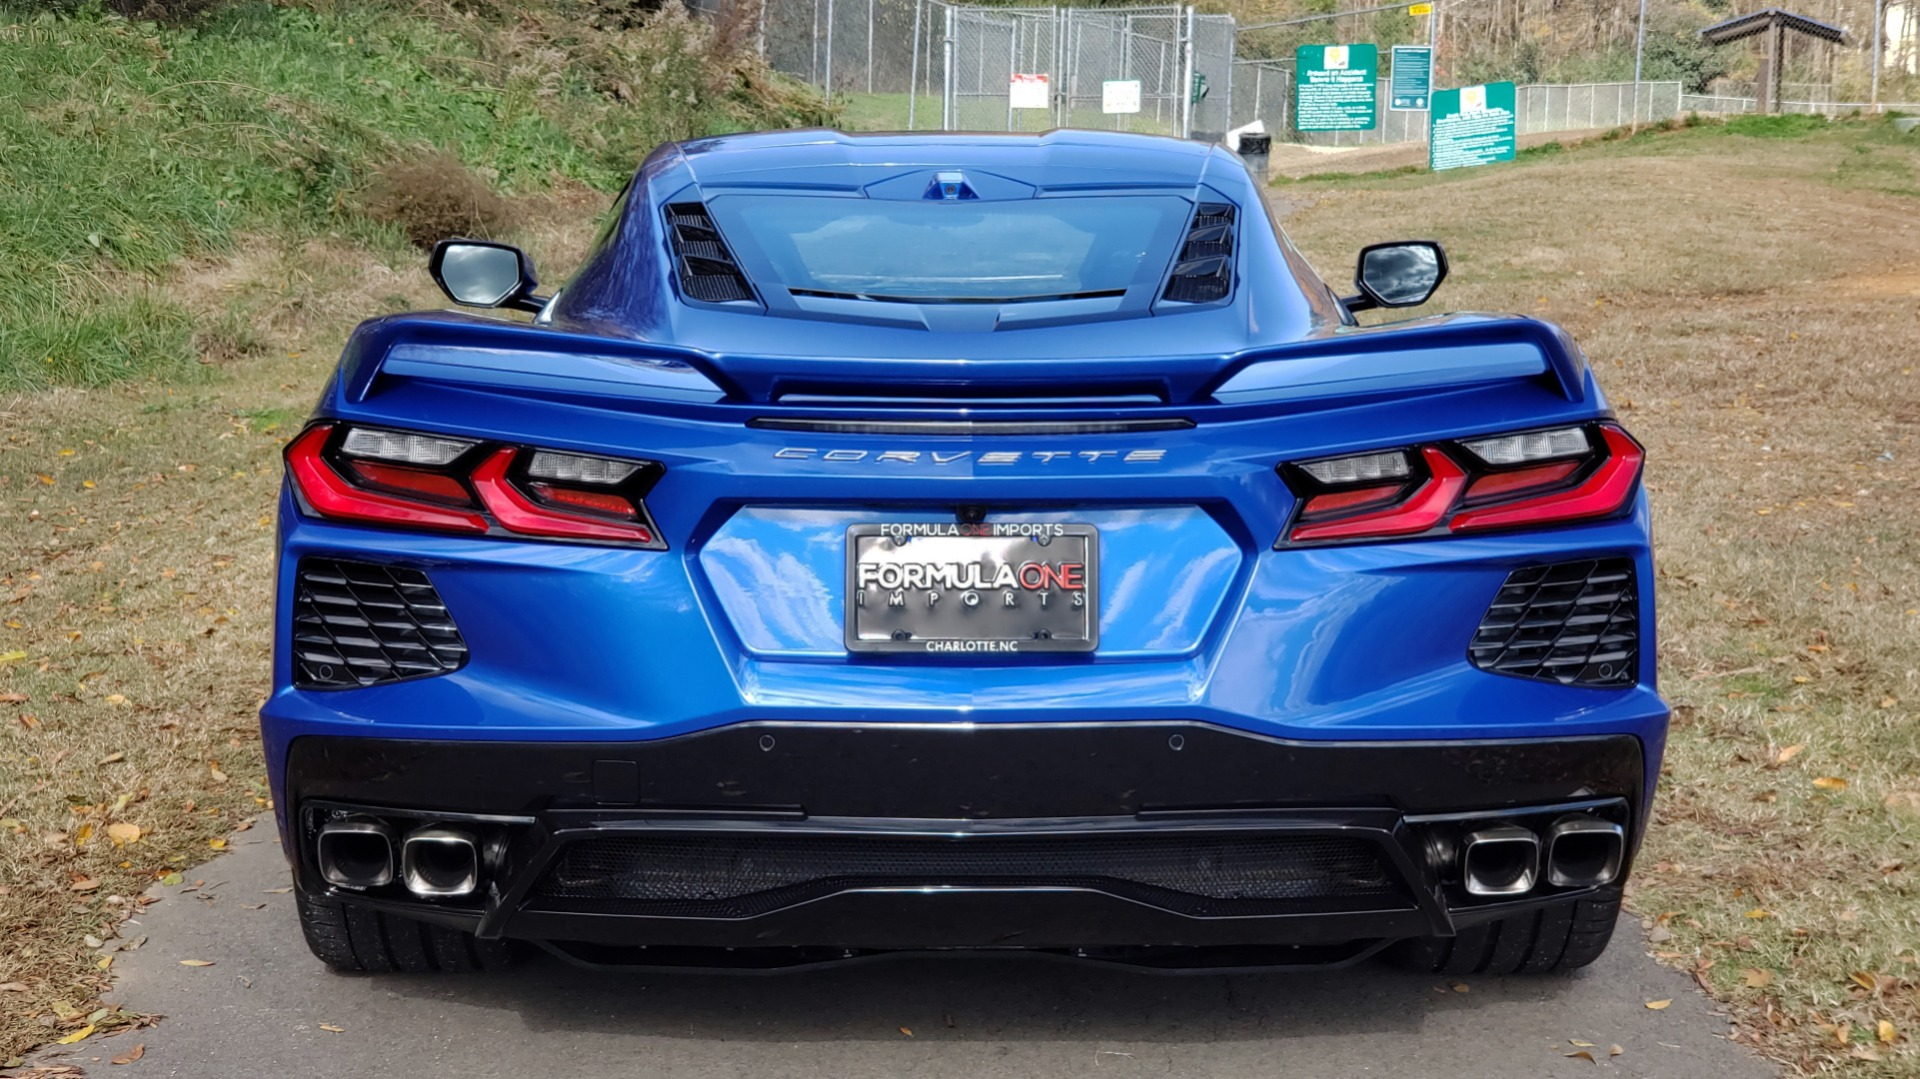 Used 2020 Chevrolet C8 CORVETTE STINGRAY 2LT COUPE / NAV / HUD / BOSE / GT2 SEATS / FRONT LIFT / REARVIEW for sale $98,999 at Formula Imports in Charlotte NC 28227 18